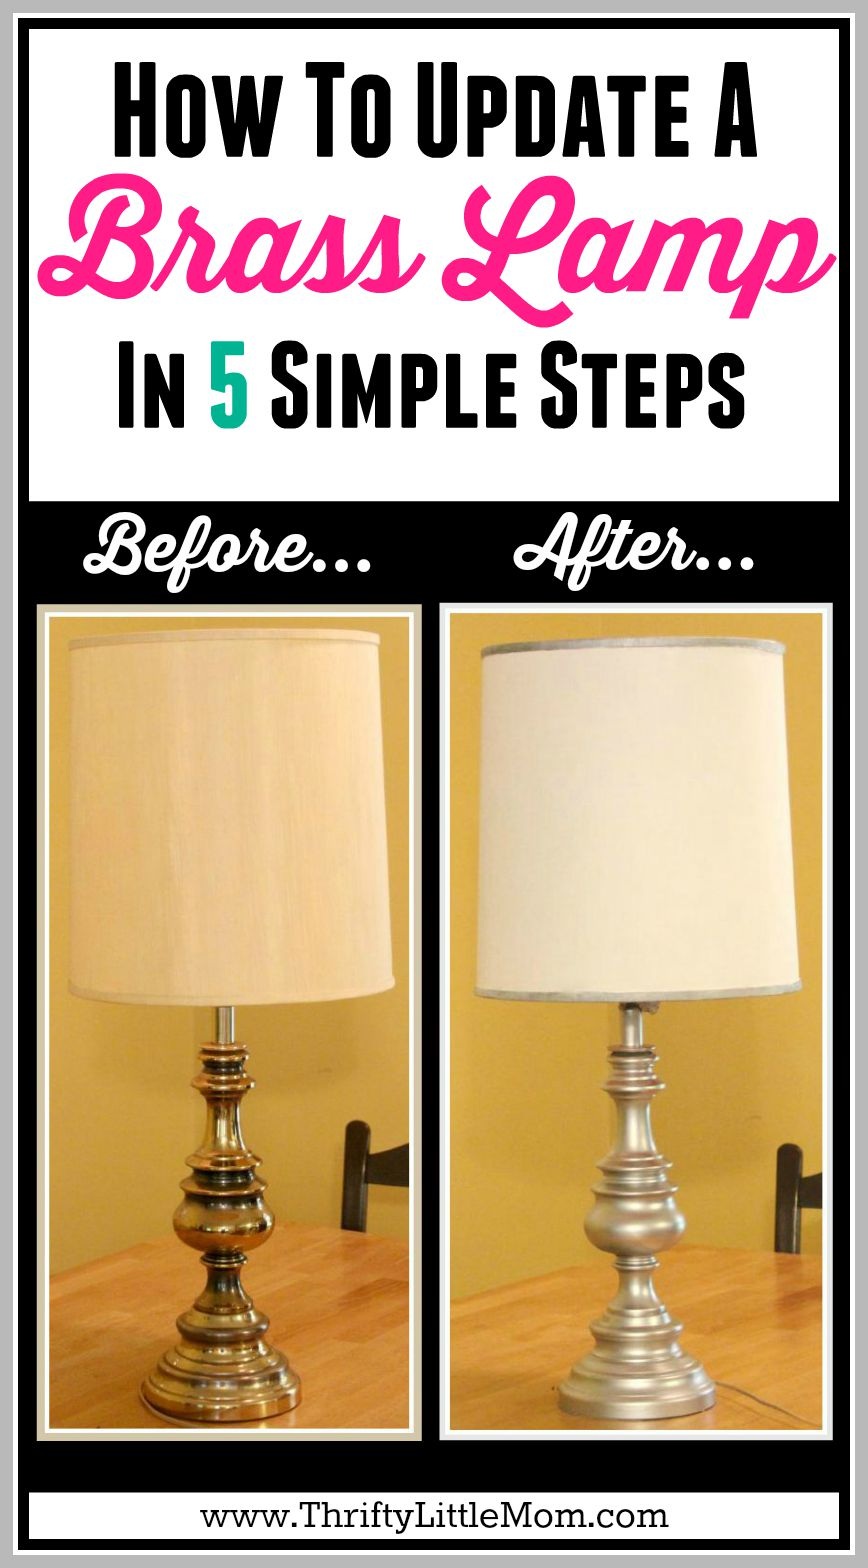 How to Update a Brass Lamp in 5 Simple Steps. I made this $5 Estate Sale lamp the perfect match for my new living room decor in just 5 steps.